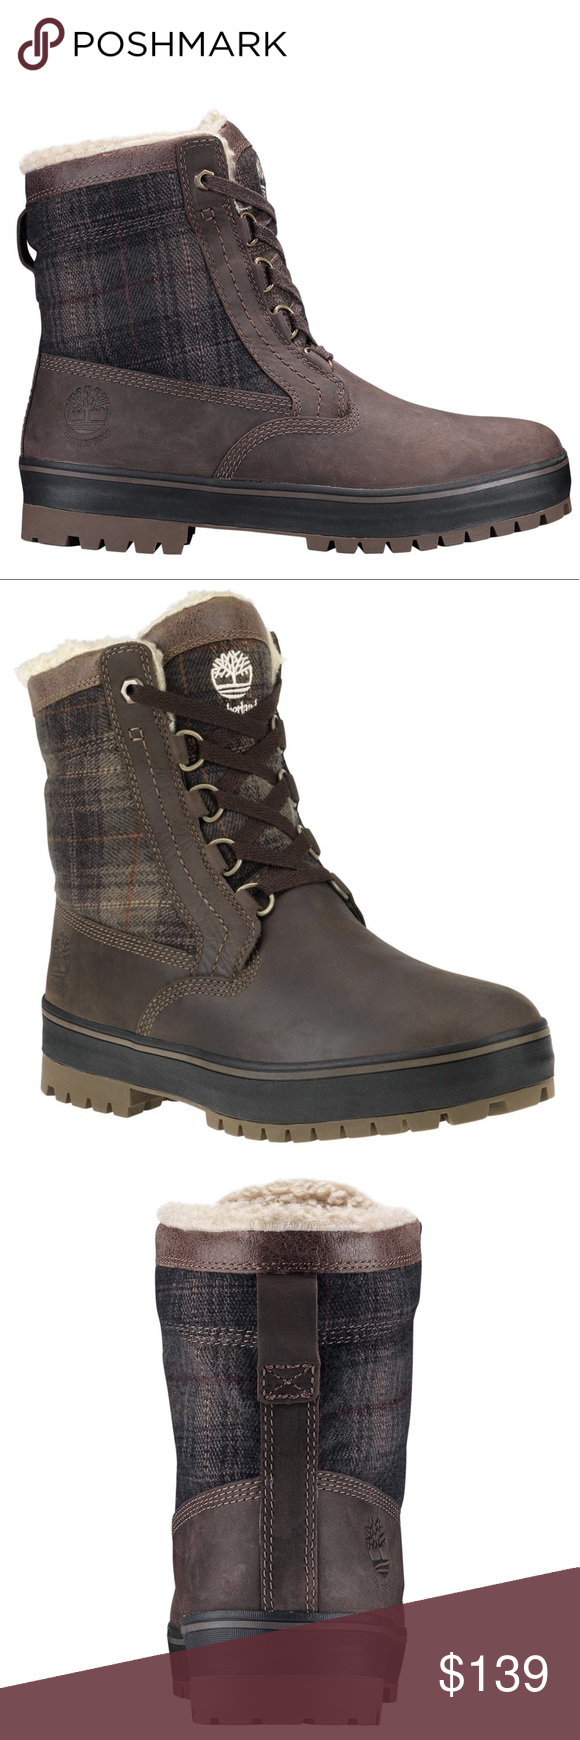 No haga prototipo enlace  NEW TIMBERLAND MEN'S SPRUCE MOUNTAIN WP BOOT | Boots, Timberland mens,  Shoes boots timberland